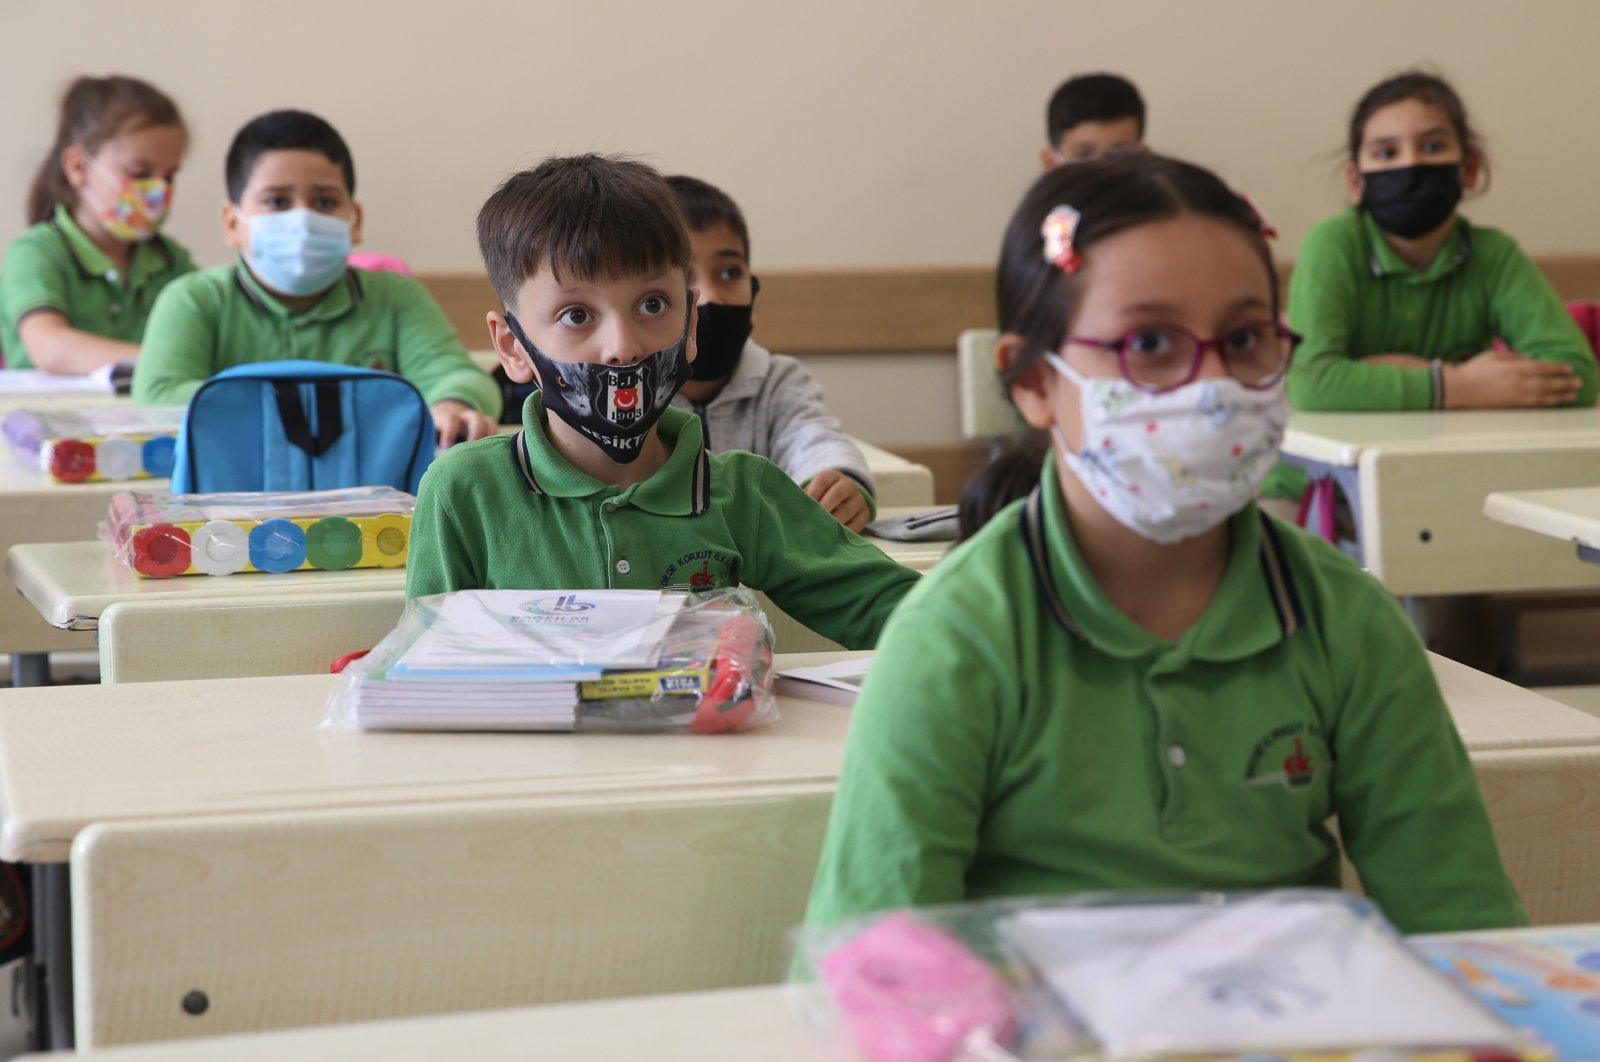 Students wearing protective masks sit inside a classroom at a school in Bağcılar district, Istanbul, Turkey, Sept. 6, 2021. (AA Photo)